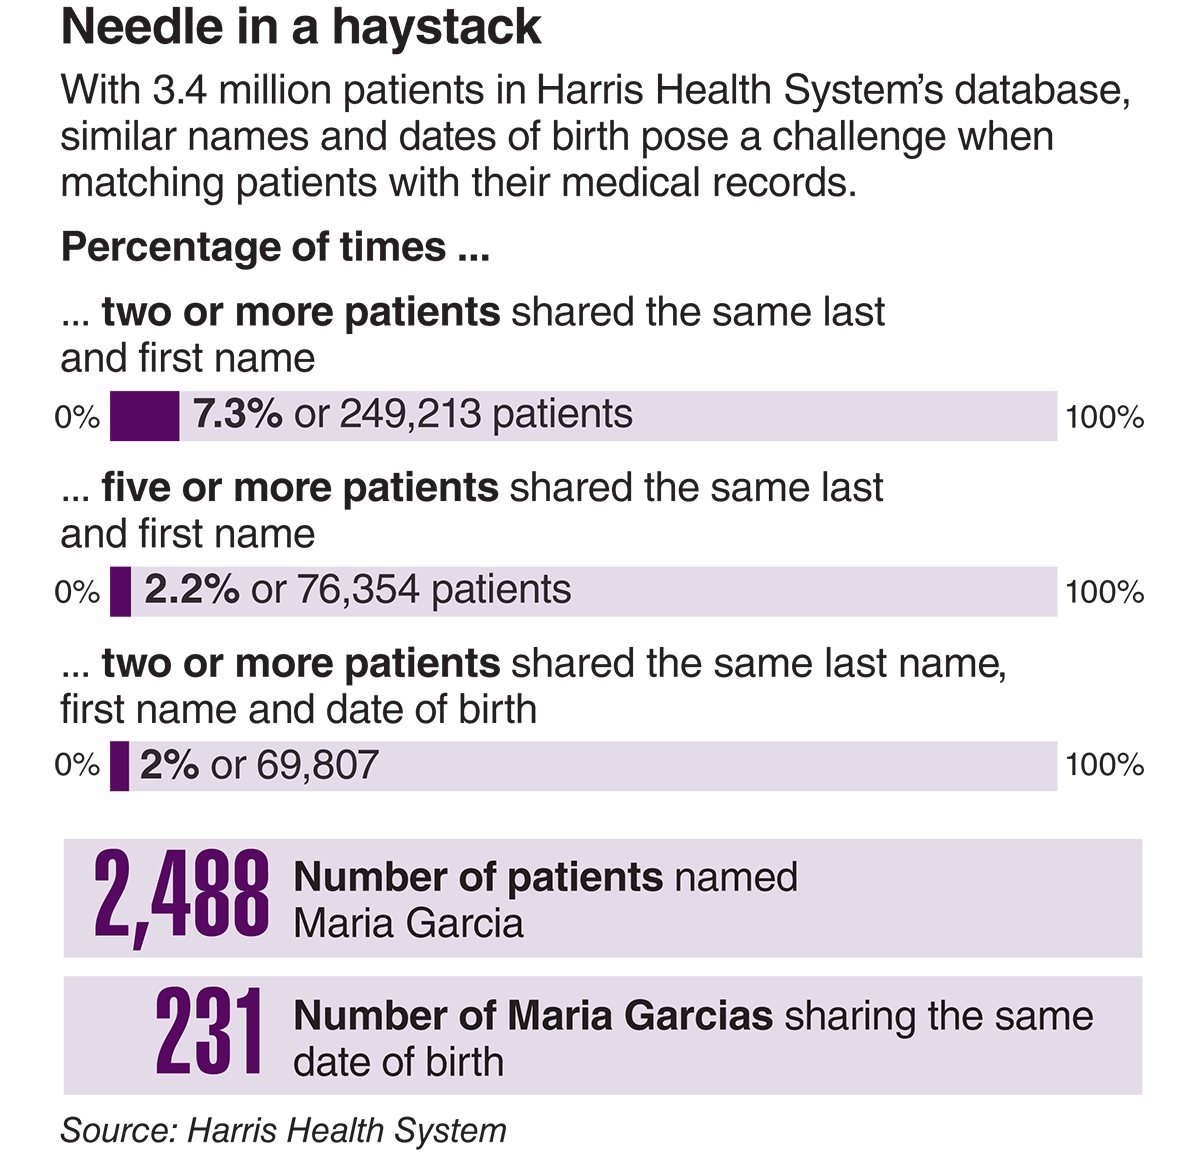 With 3.4 million patients in Harris Health System's database, similar names and dates of birth pose a challenge when matching patients with their medical records.